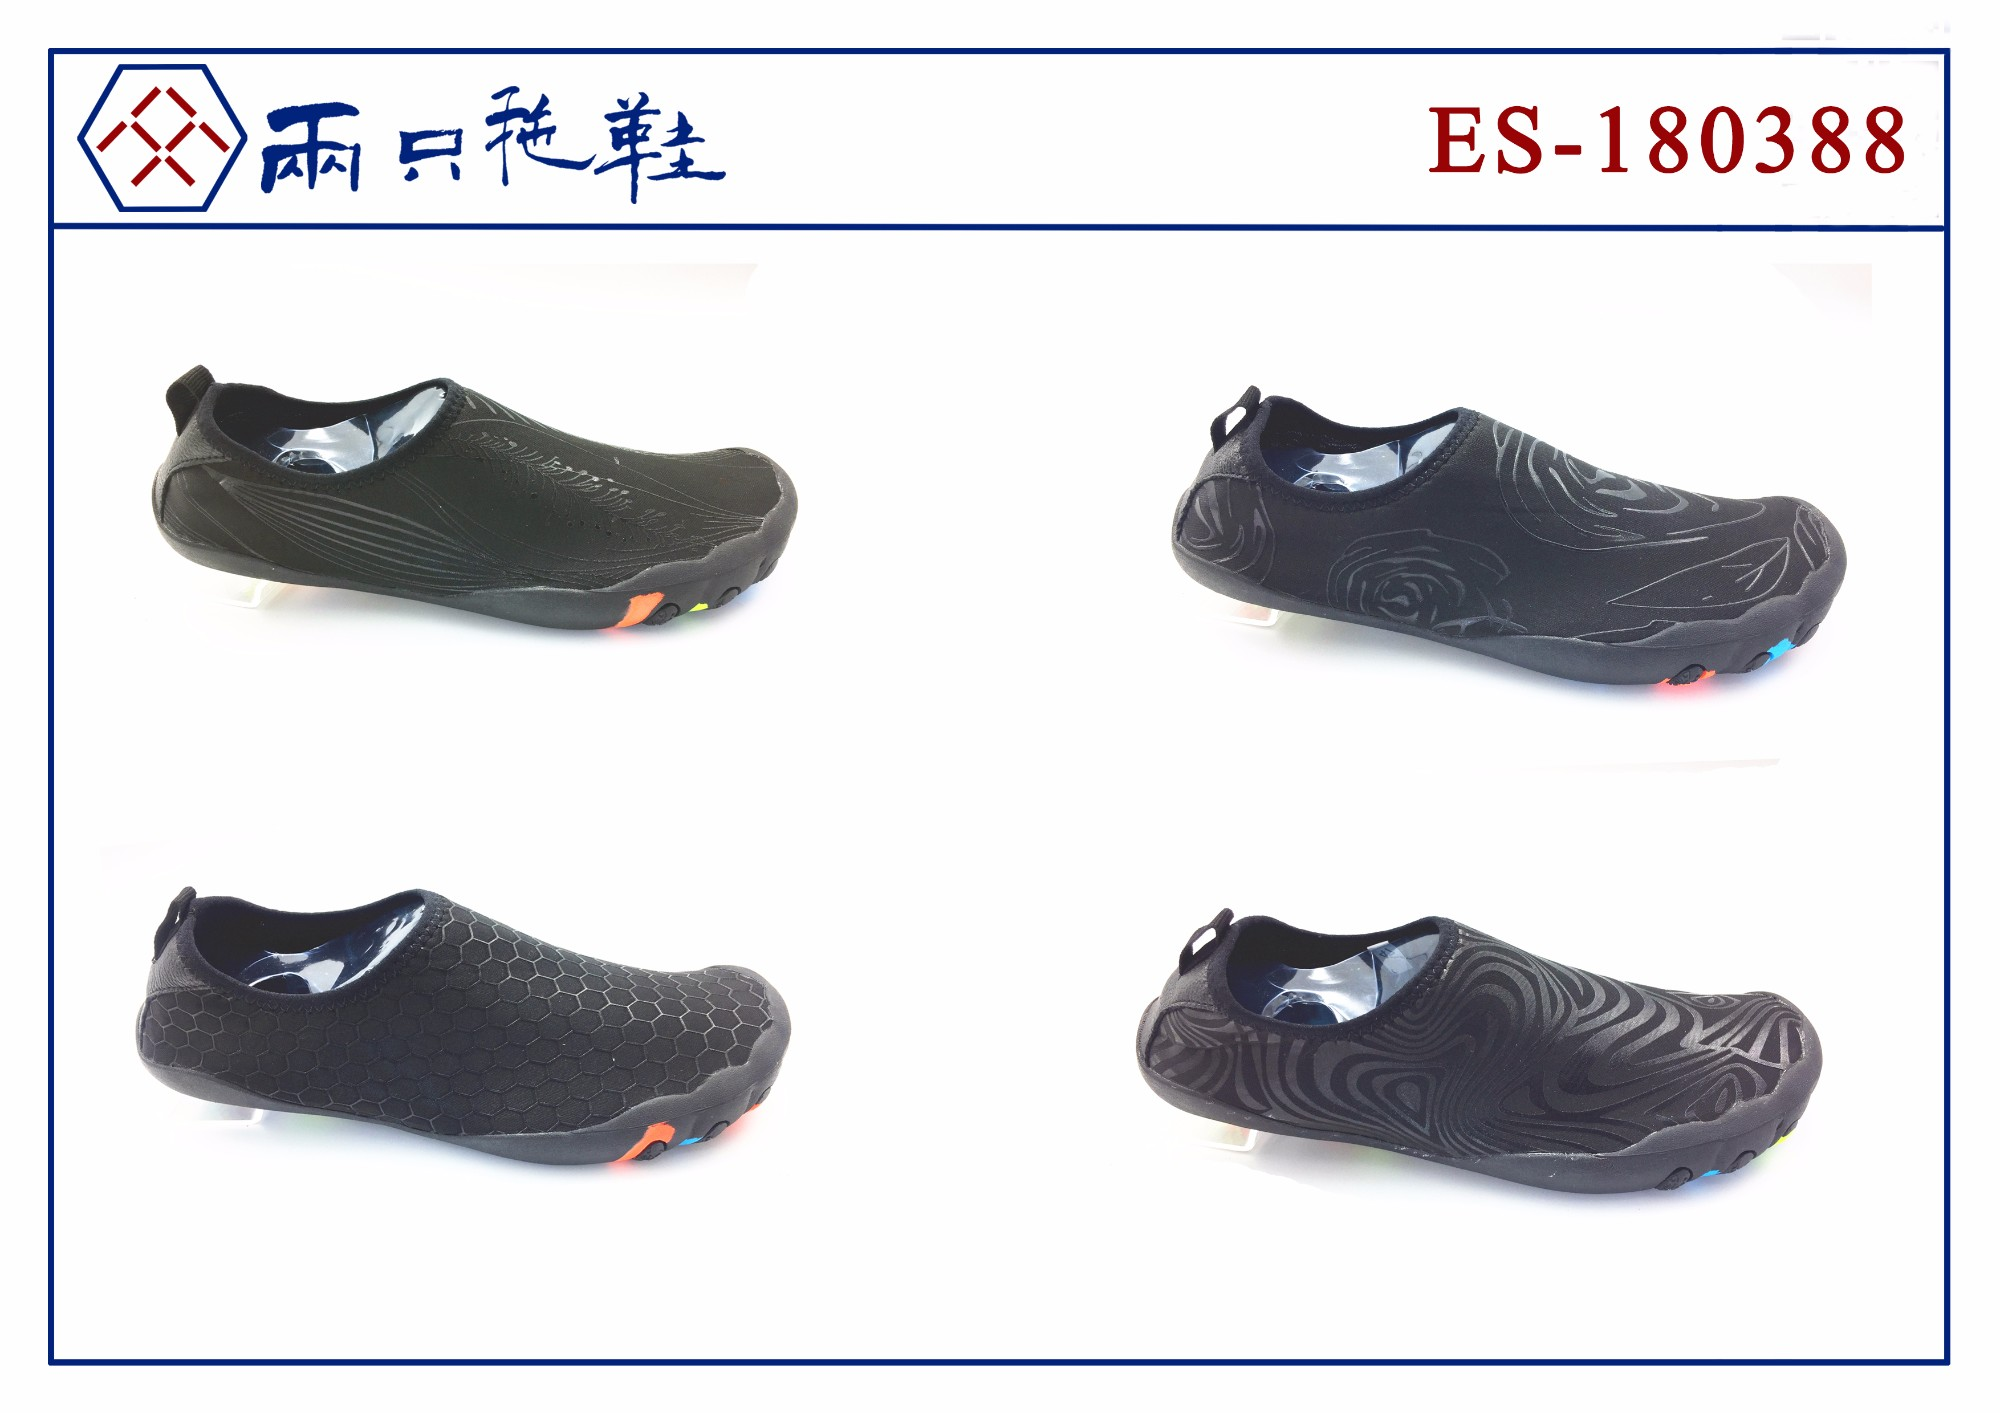 New style water shoes